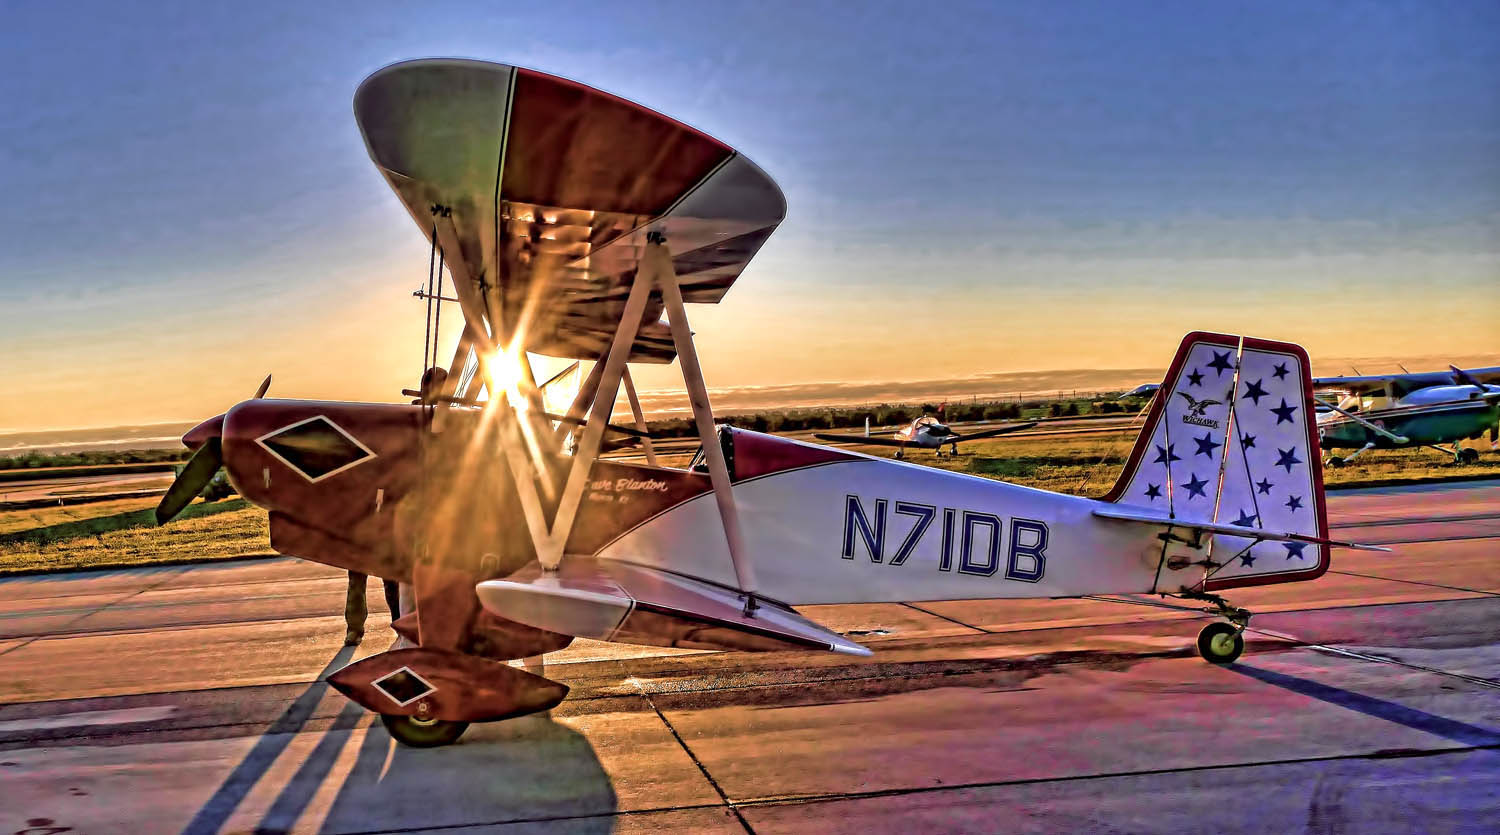 BI PLANE AT SUNRISE